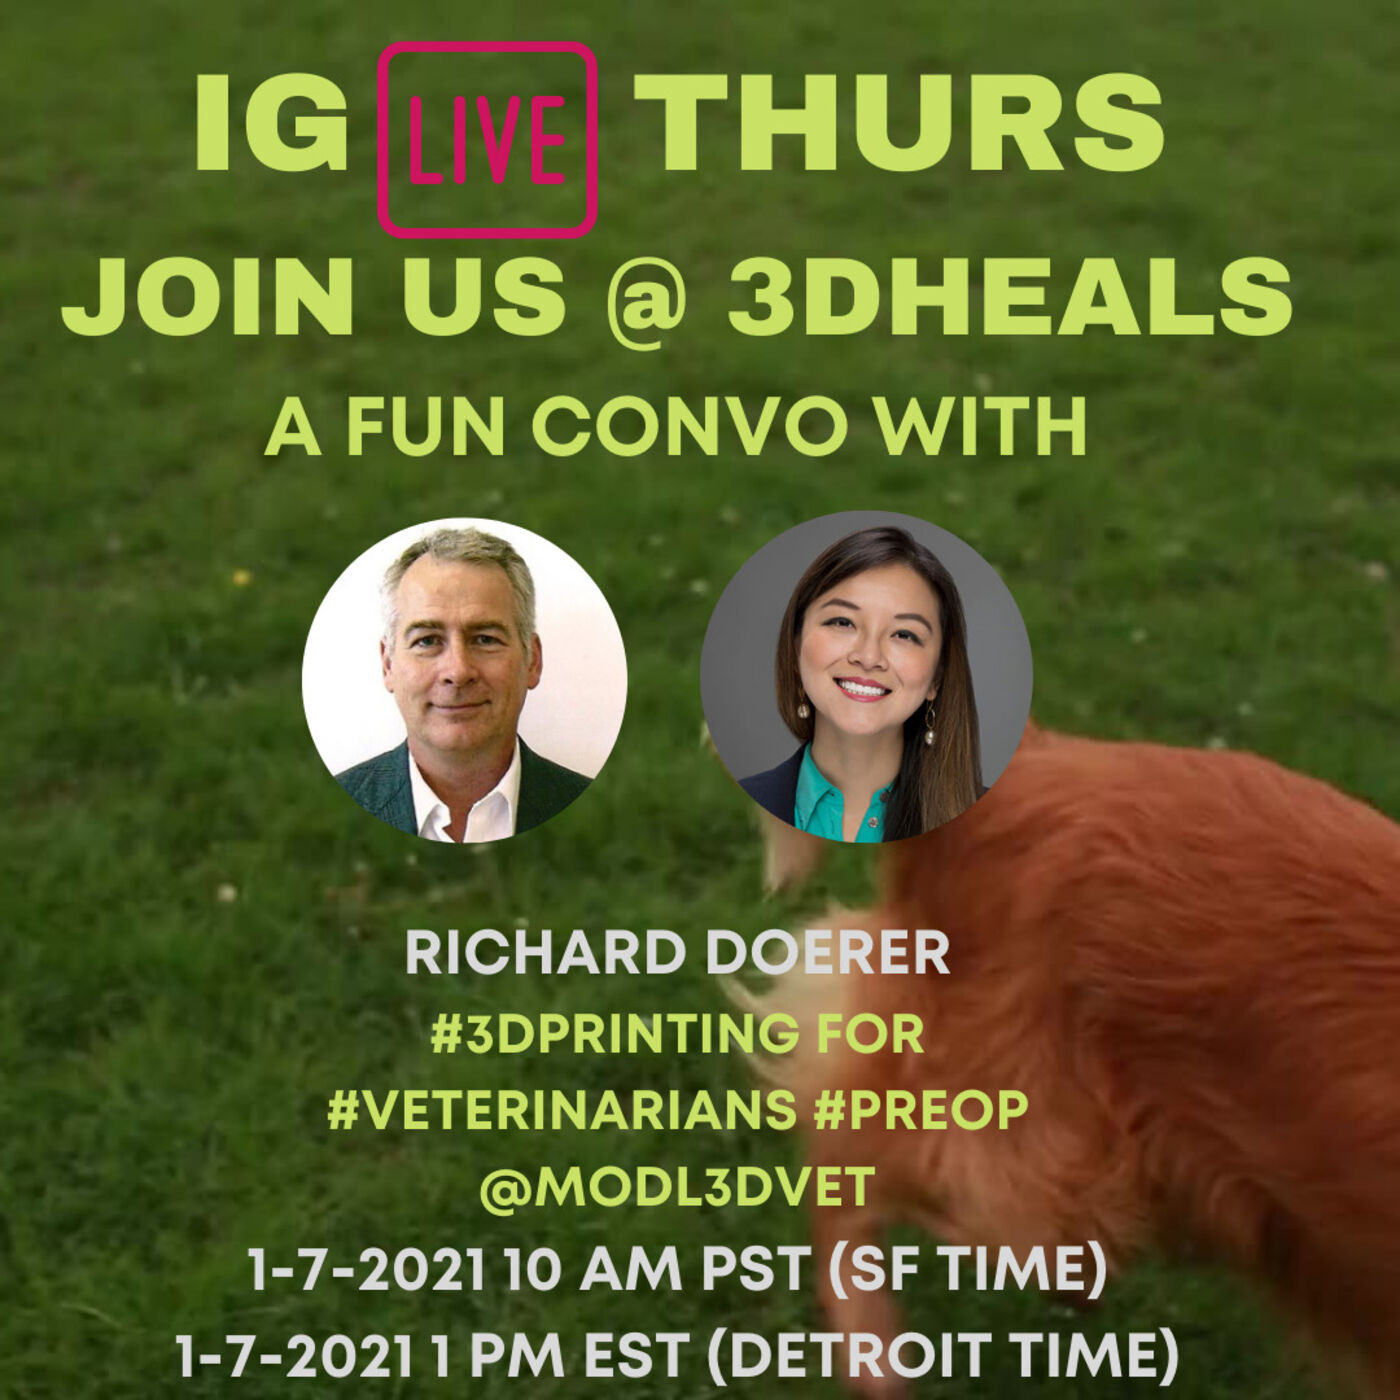 3DHEALS IG Live: 3D Printing for Veterinary Medicine with Richard Doerer @modl3dvet